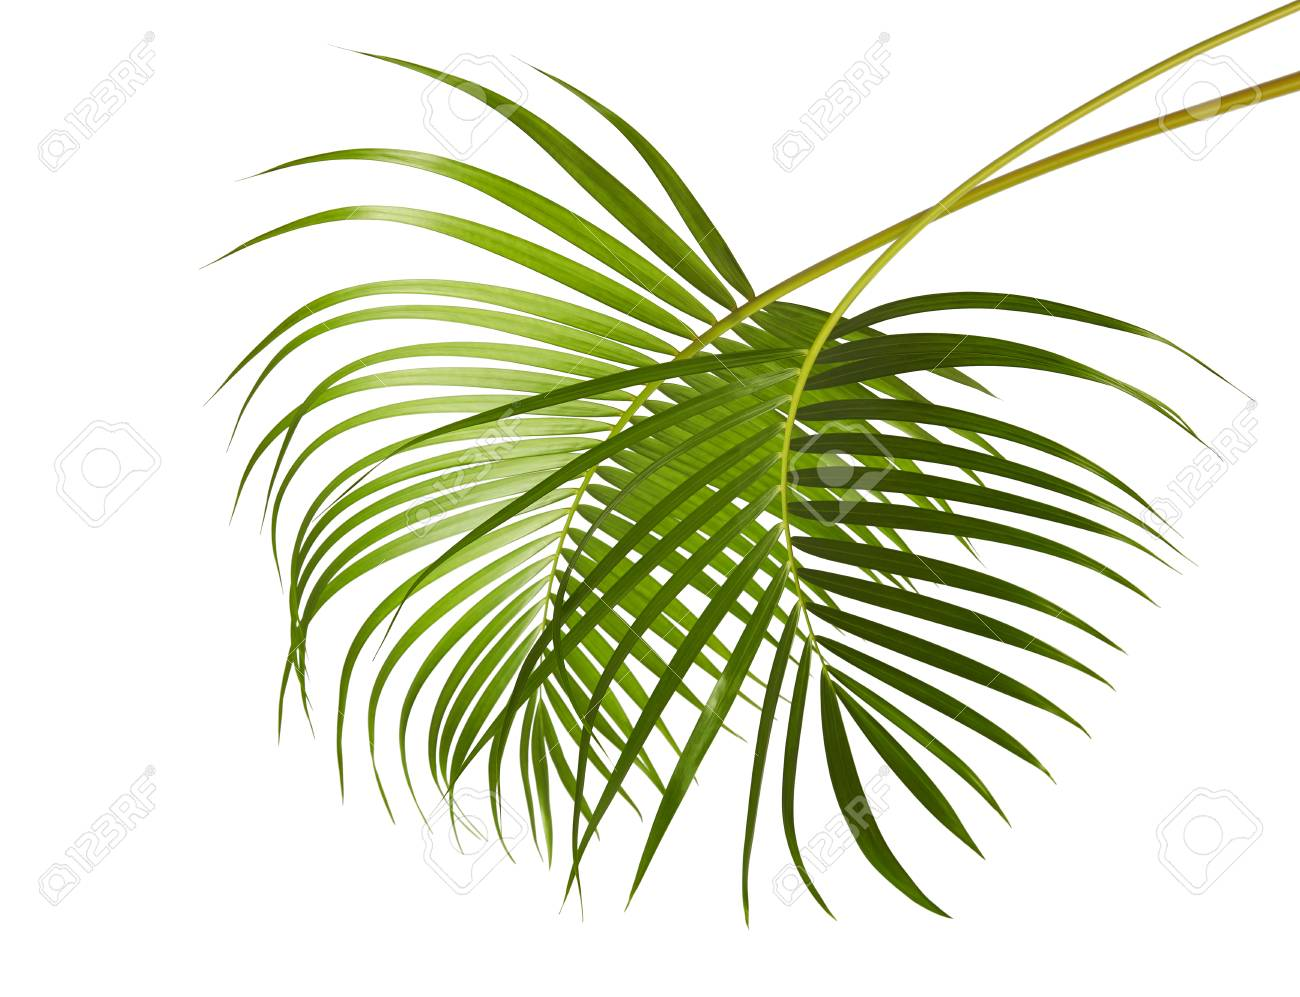 Yellow Palm Leaves Dypsis Lutescens Or Golden Cane Palm Areca Stock Photo Picture And Royalty Free Image Image 95038144